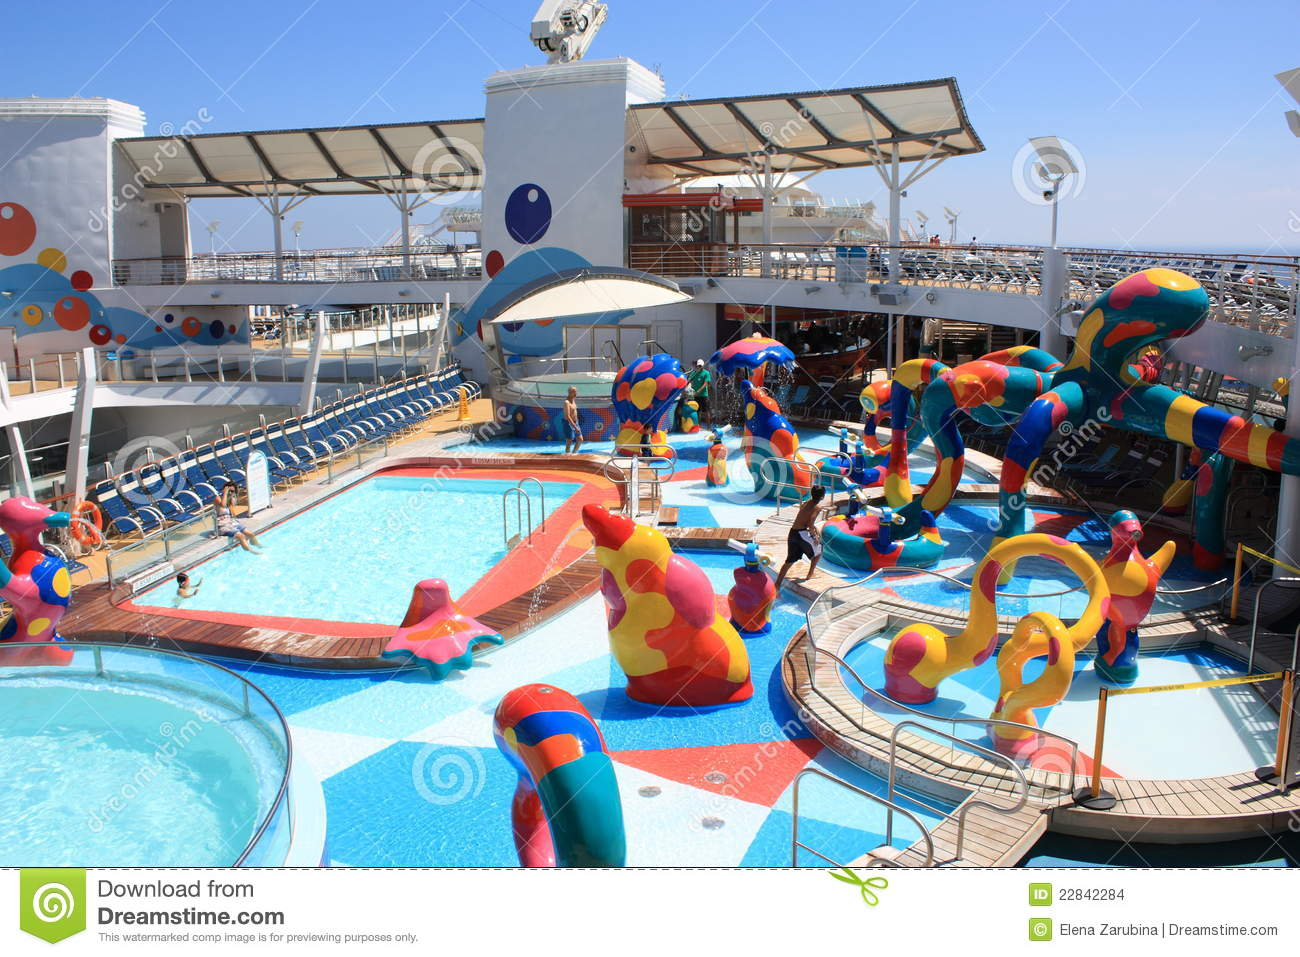 e22c2911b2e The beautiful outdoor Kids pool zone on board the biggest cruise ship in  the world Oasis of the seas owned by Royal Caribbean International